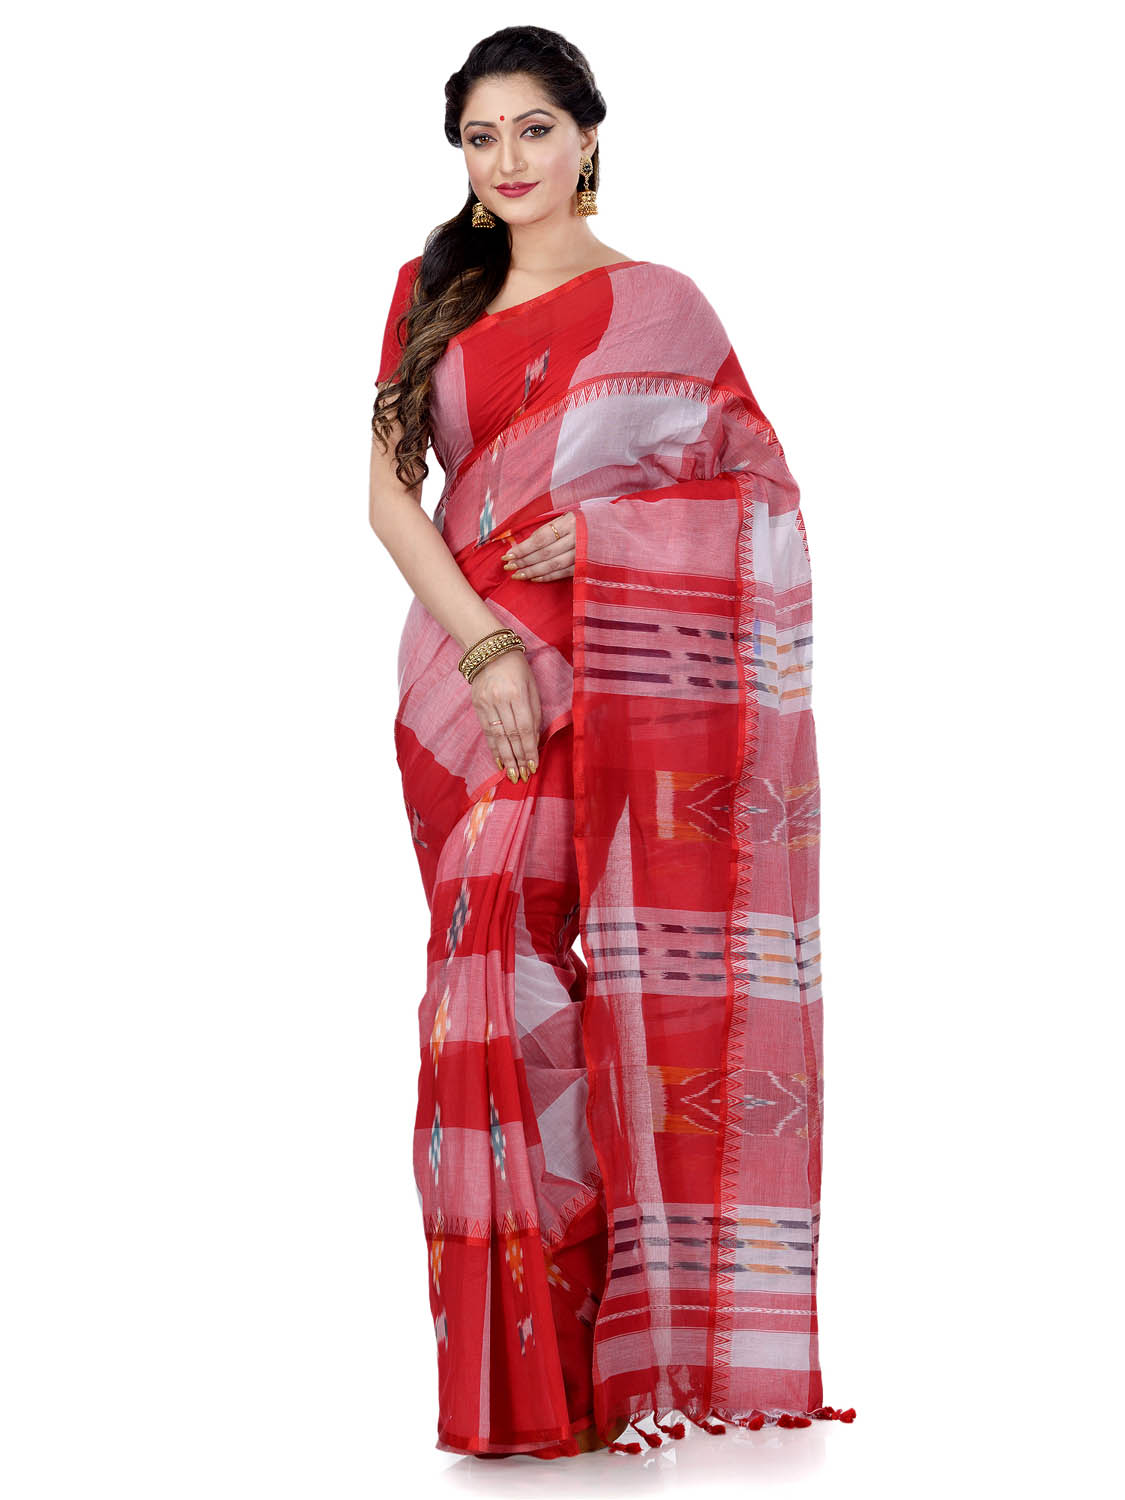 Women`s Bengal Handloom Tant Malmal Pure Cotton Saree Kotki Design Without Blouse Piece (Red White)